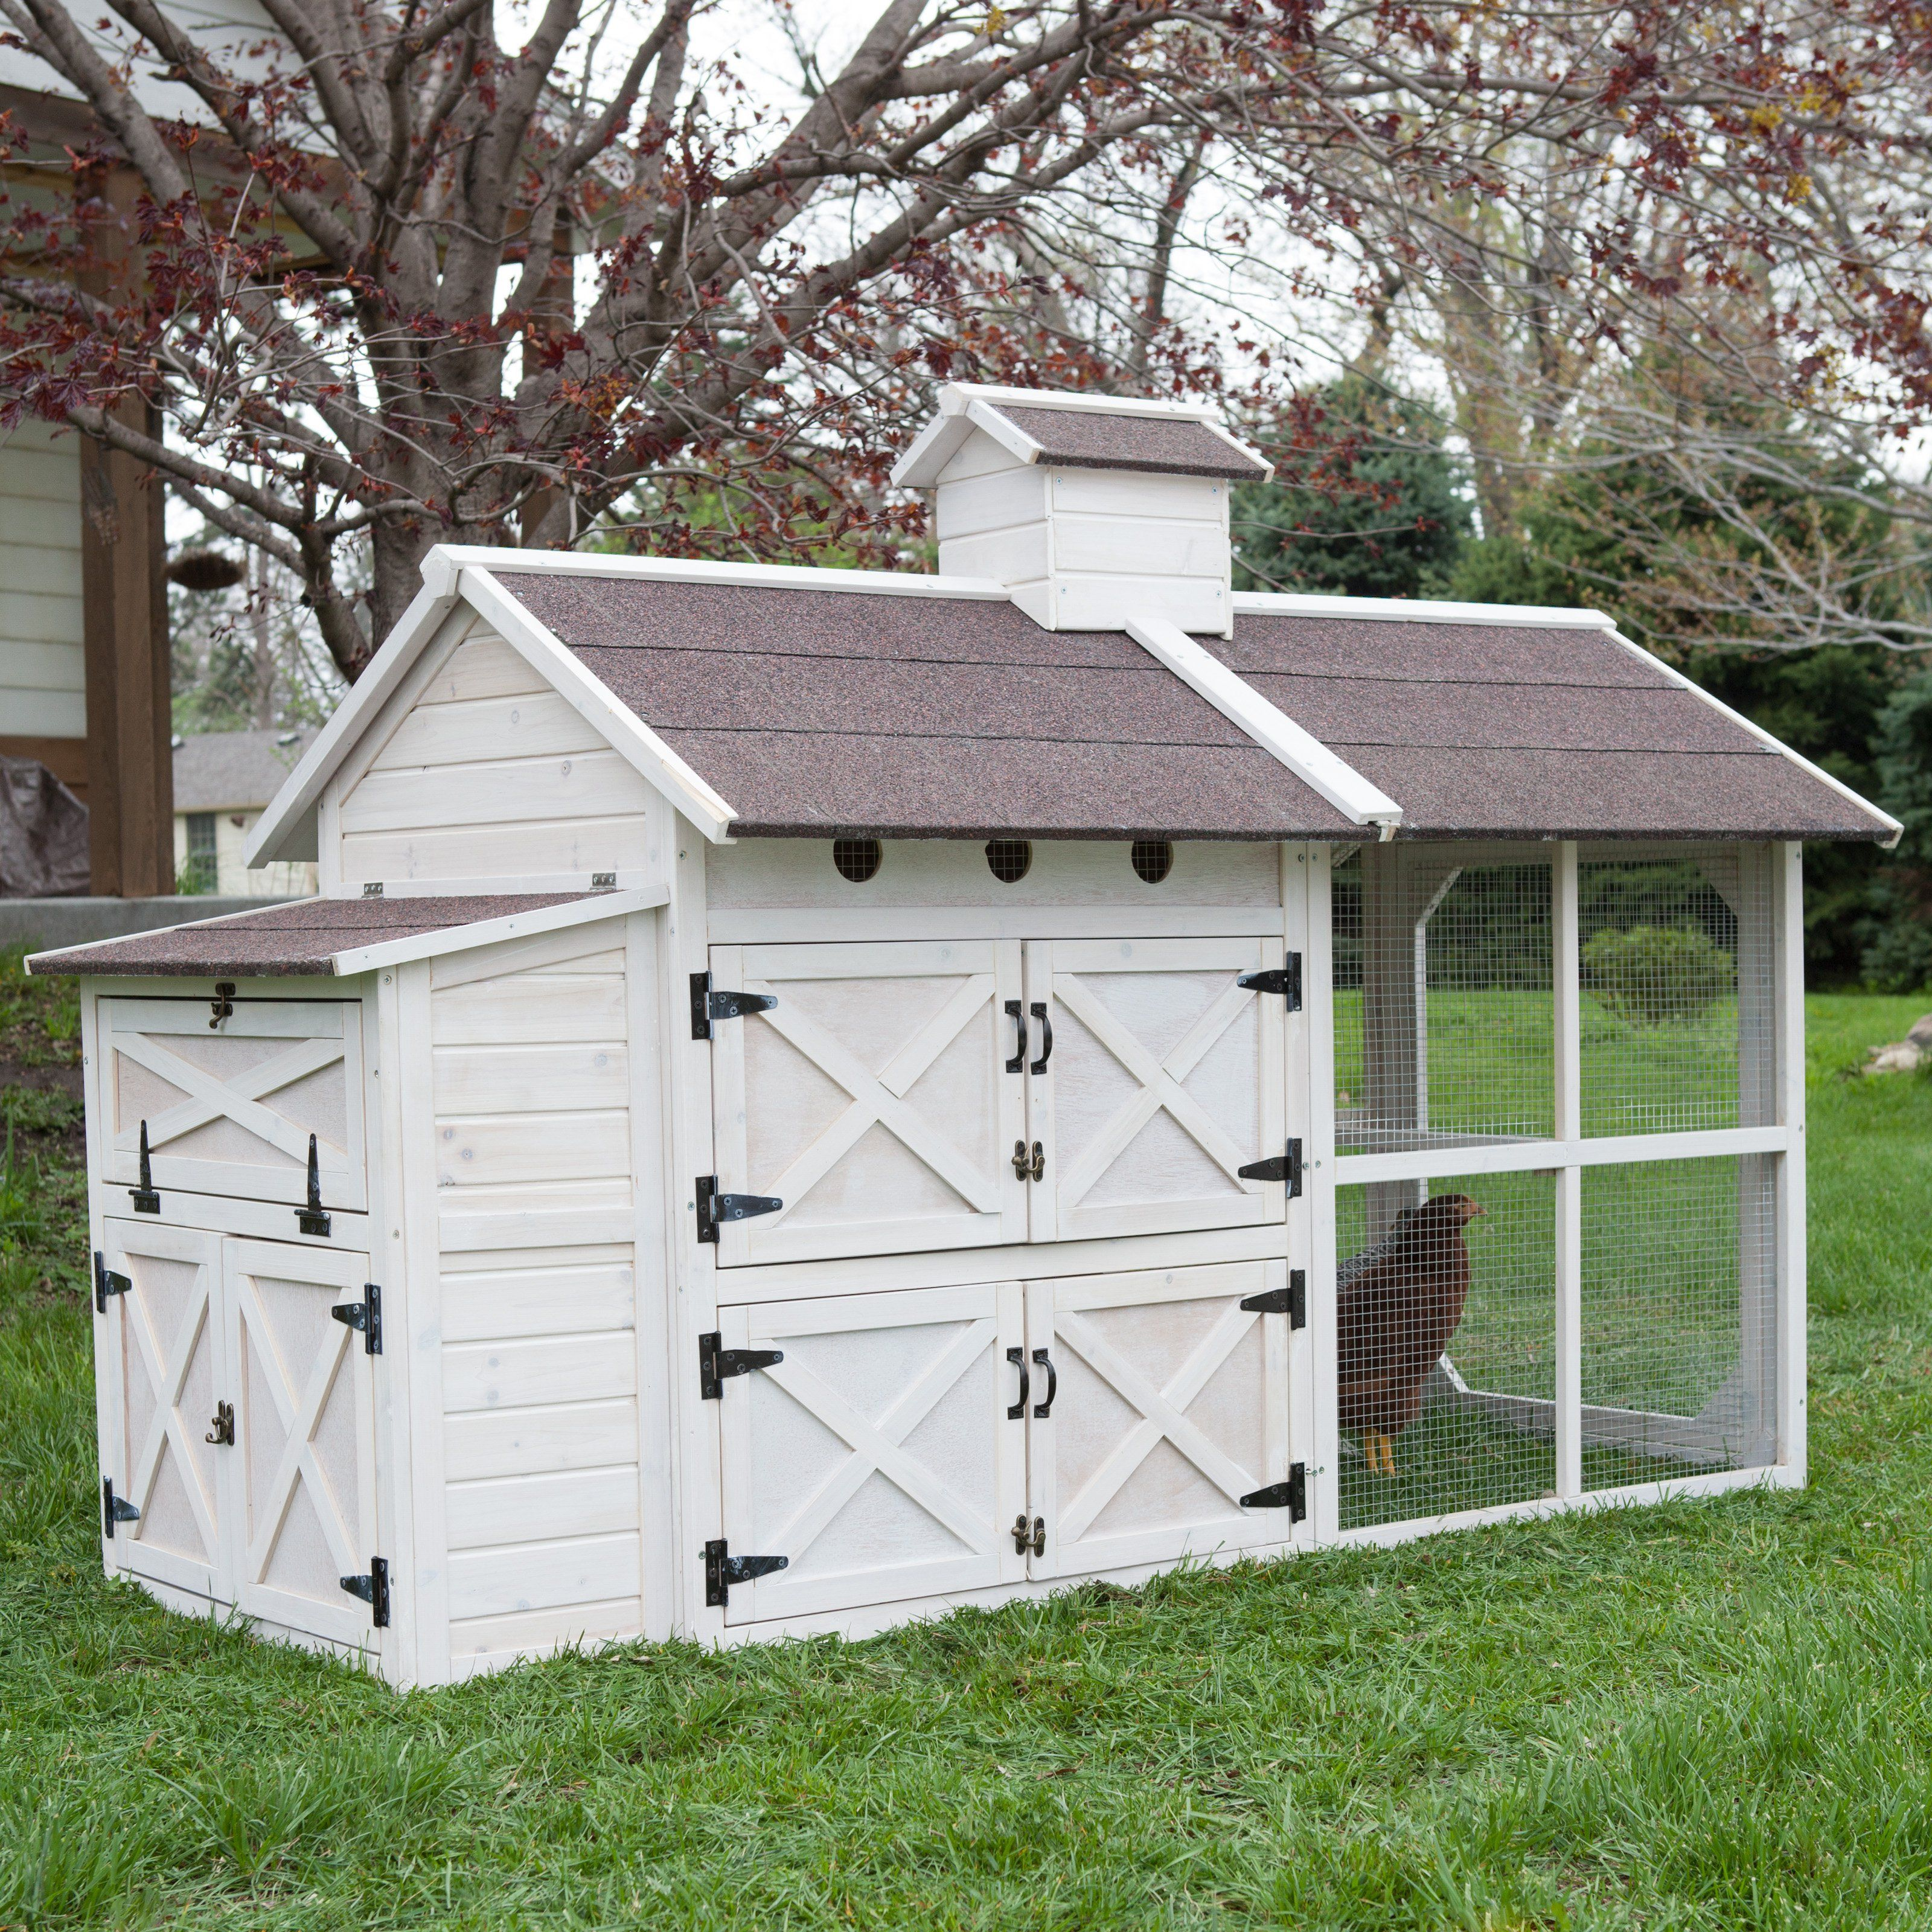 Boomer George Cottage Chicken Coop The Charming Country Style Boomer George Cottage Chicken Chickens Backyard Chicken Coop Decor Backyard Chicken Coops